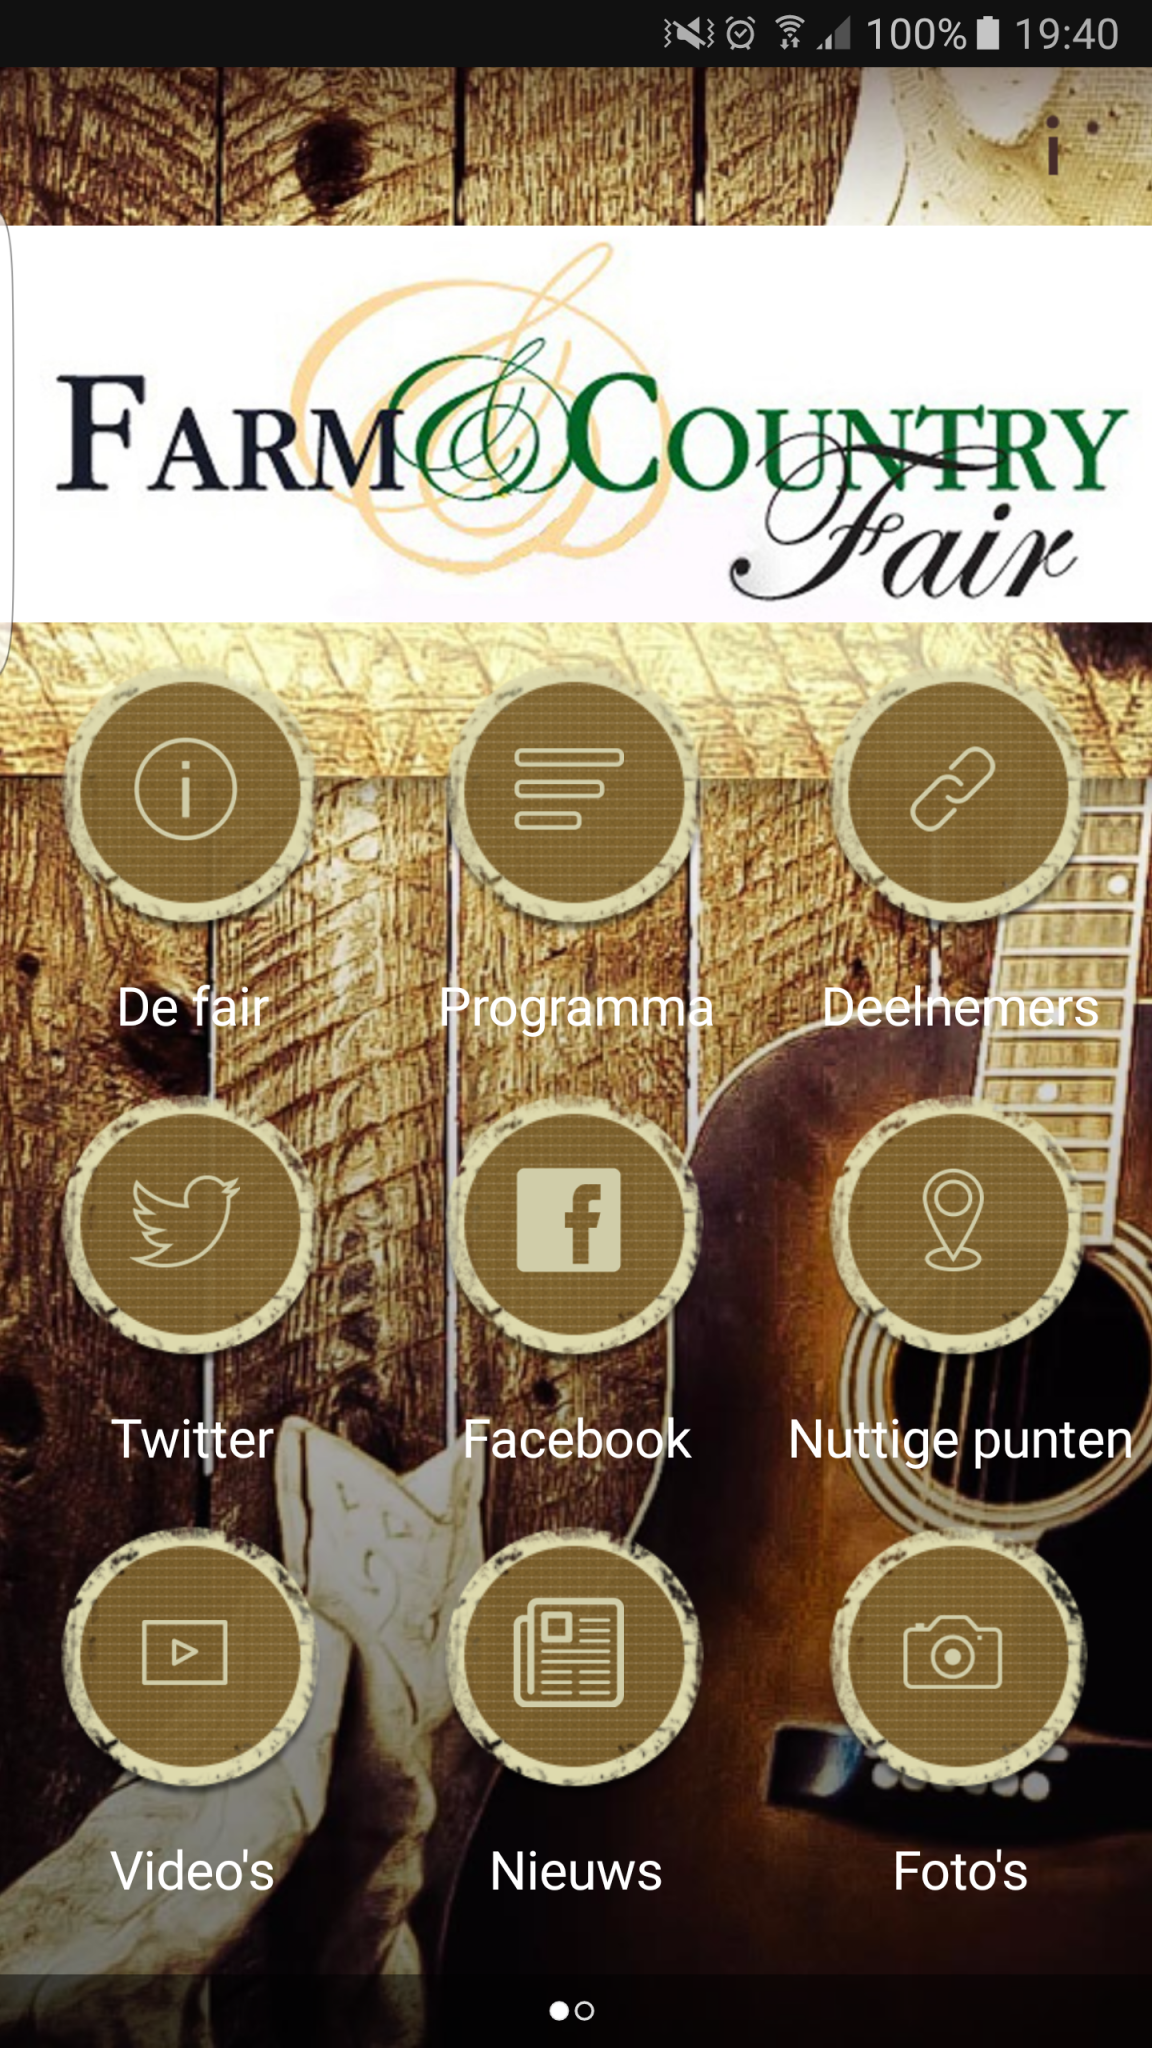 De Farm&Country Fair app